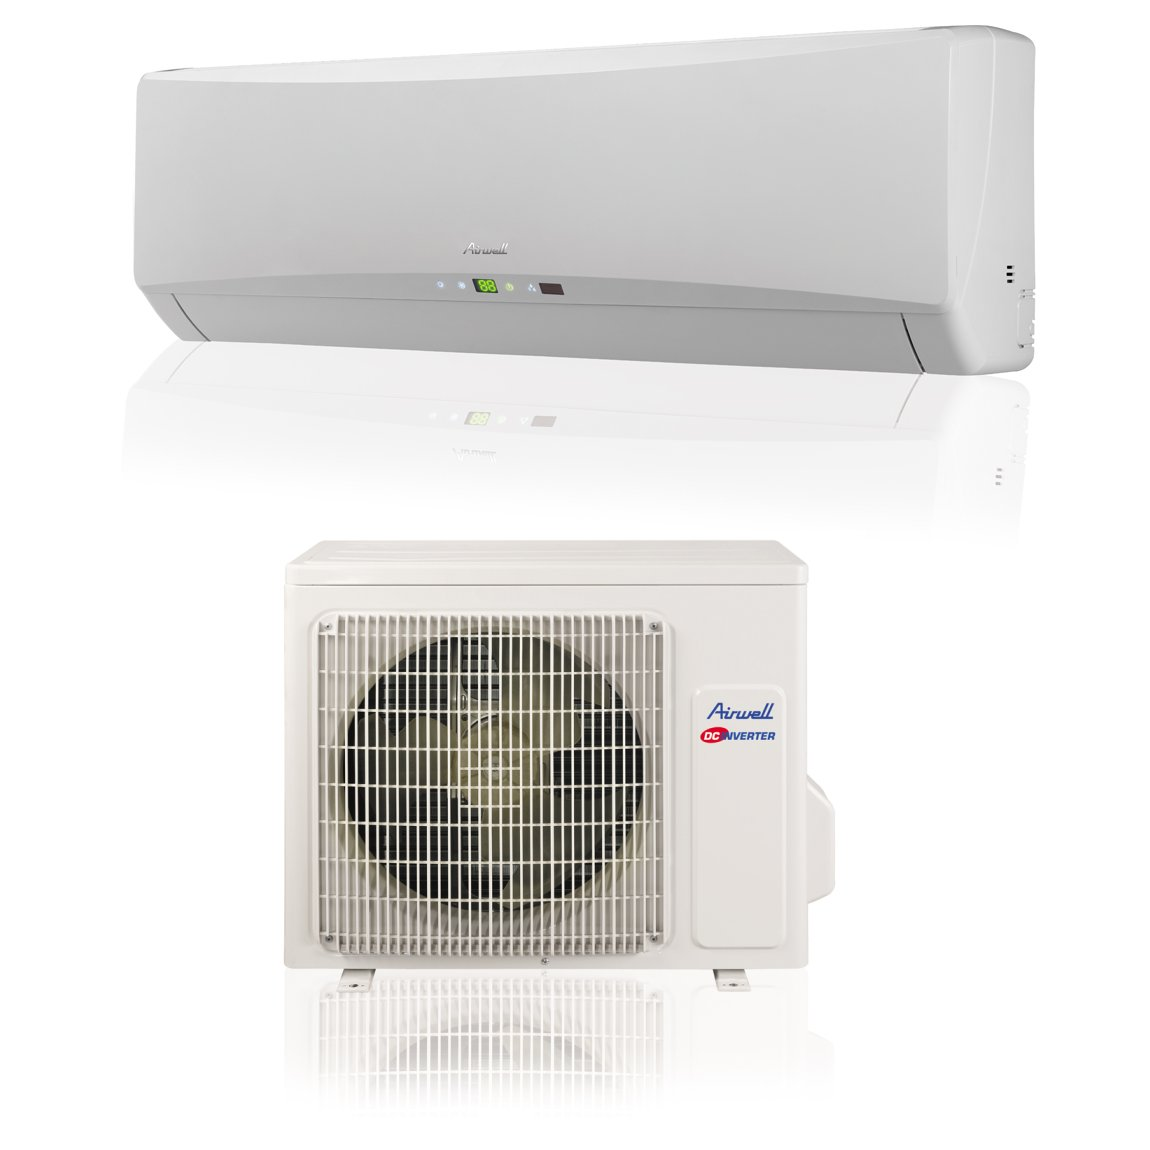 Airwell HOD024 + YOD024 Wall-Mounted Air Conditioner